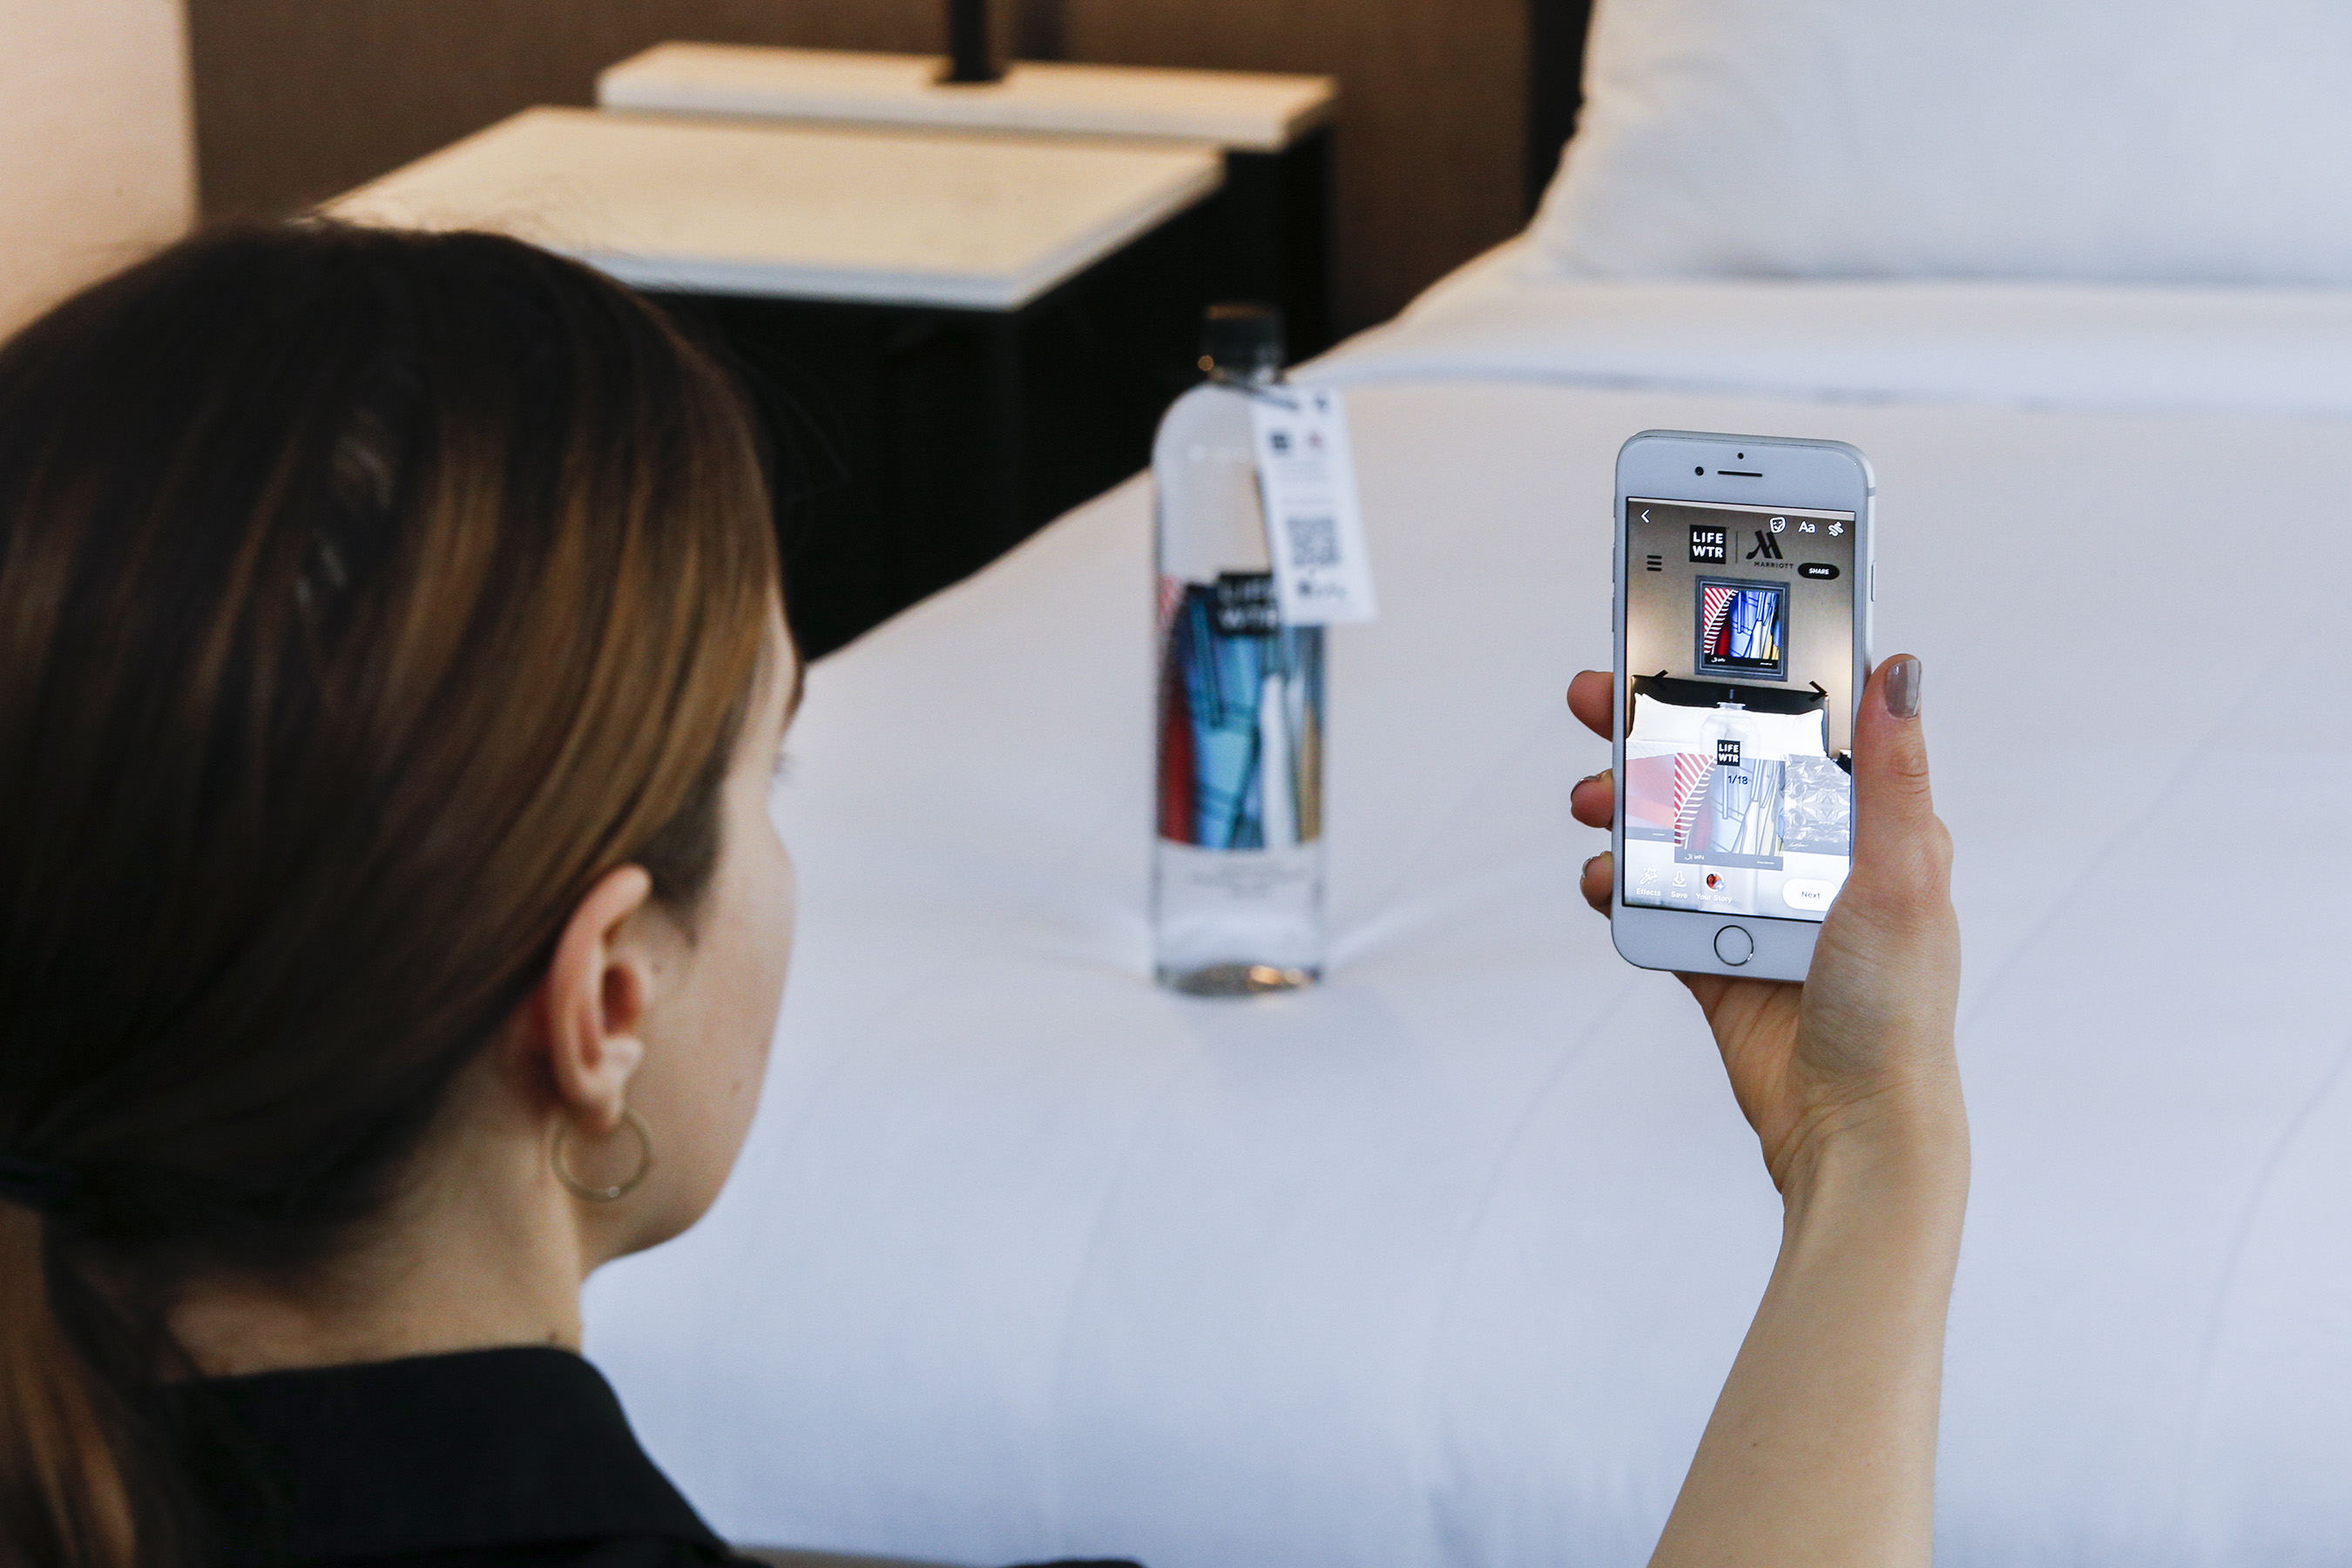 Once the code is scanned, they can customize their rooms with an AR art gallery